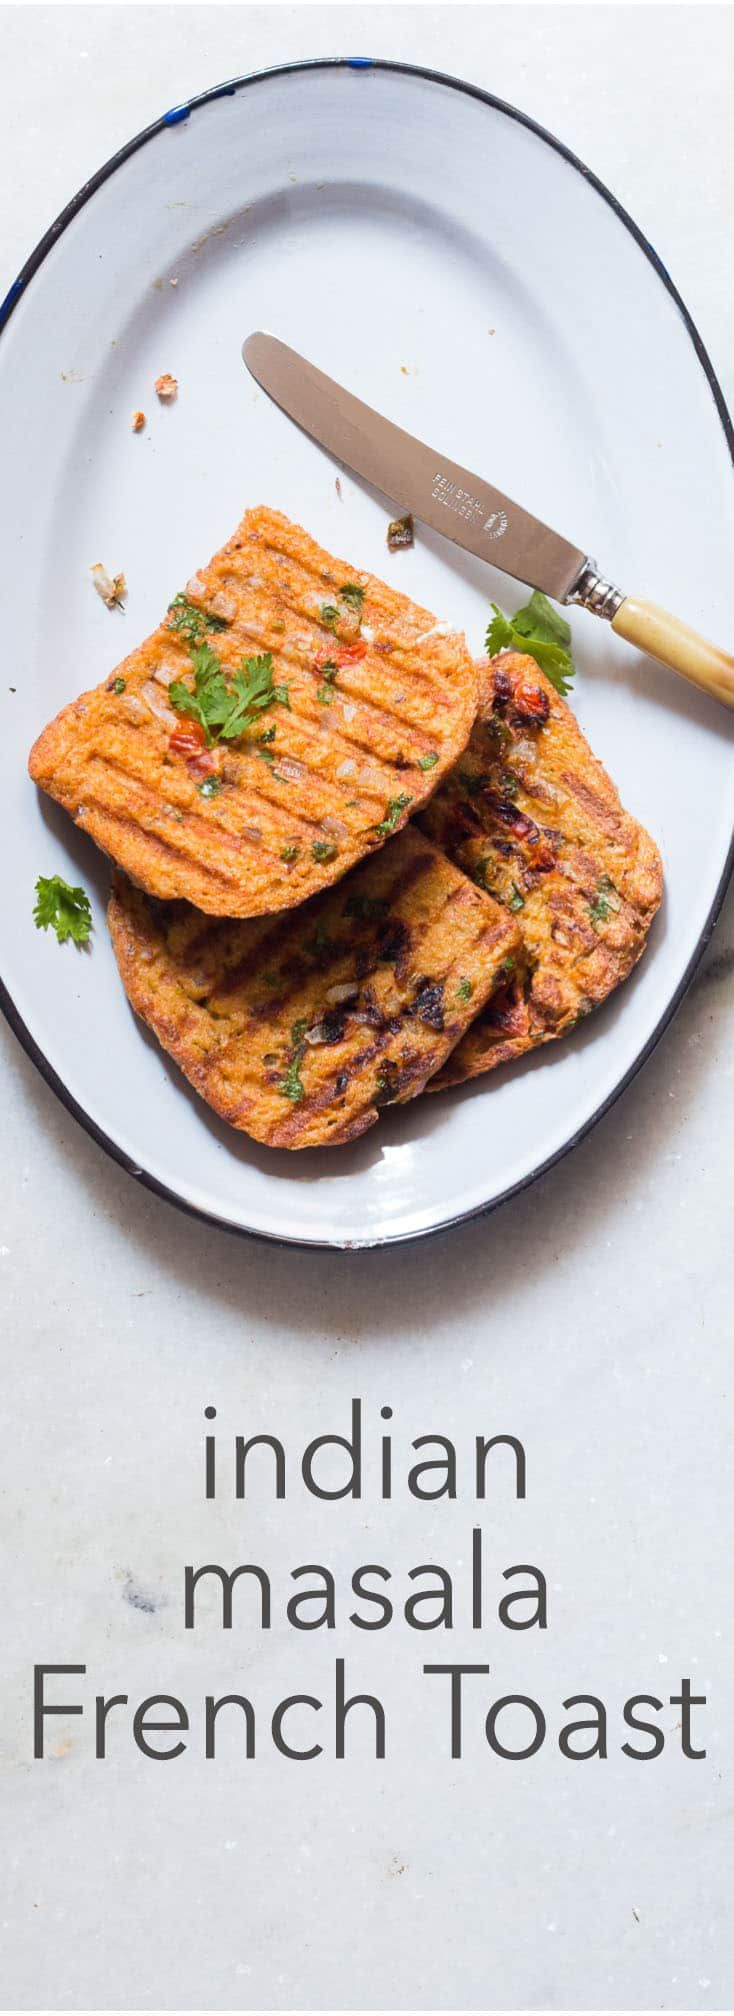 Loaded with onions, tomatoes, green chilies and coriander, these crisp Indian masala french toasts are perfect for breakfast, brunch or as a tea time snack.